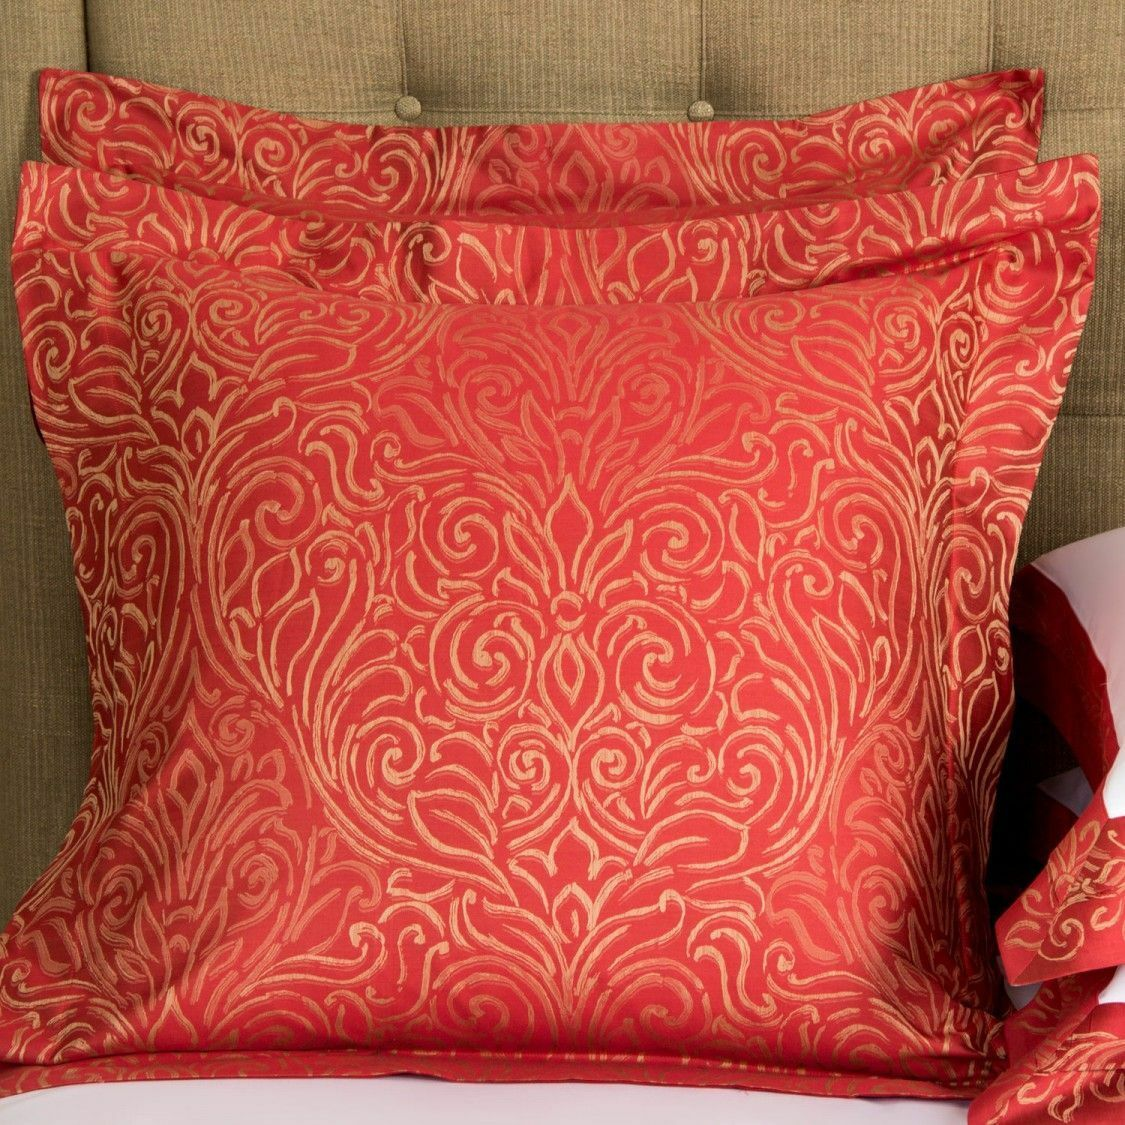 450 NEW Frette FLARE ARREDO YD  Red Beige SET of 2 SHAMS EURO 26 x 26